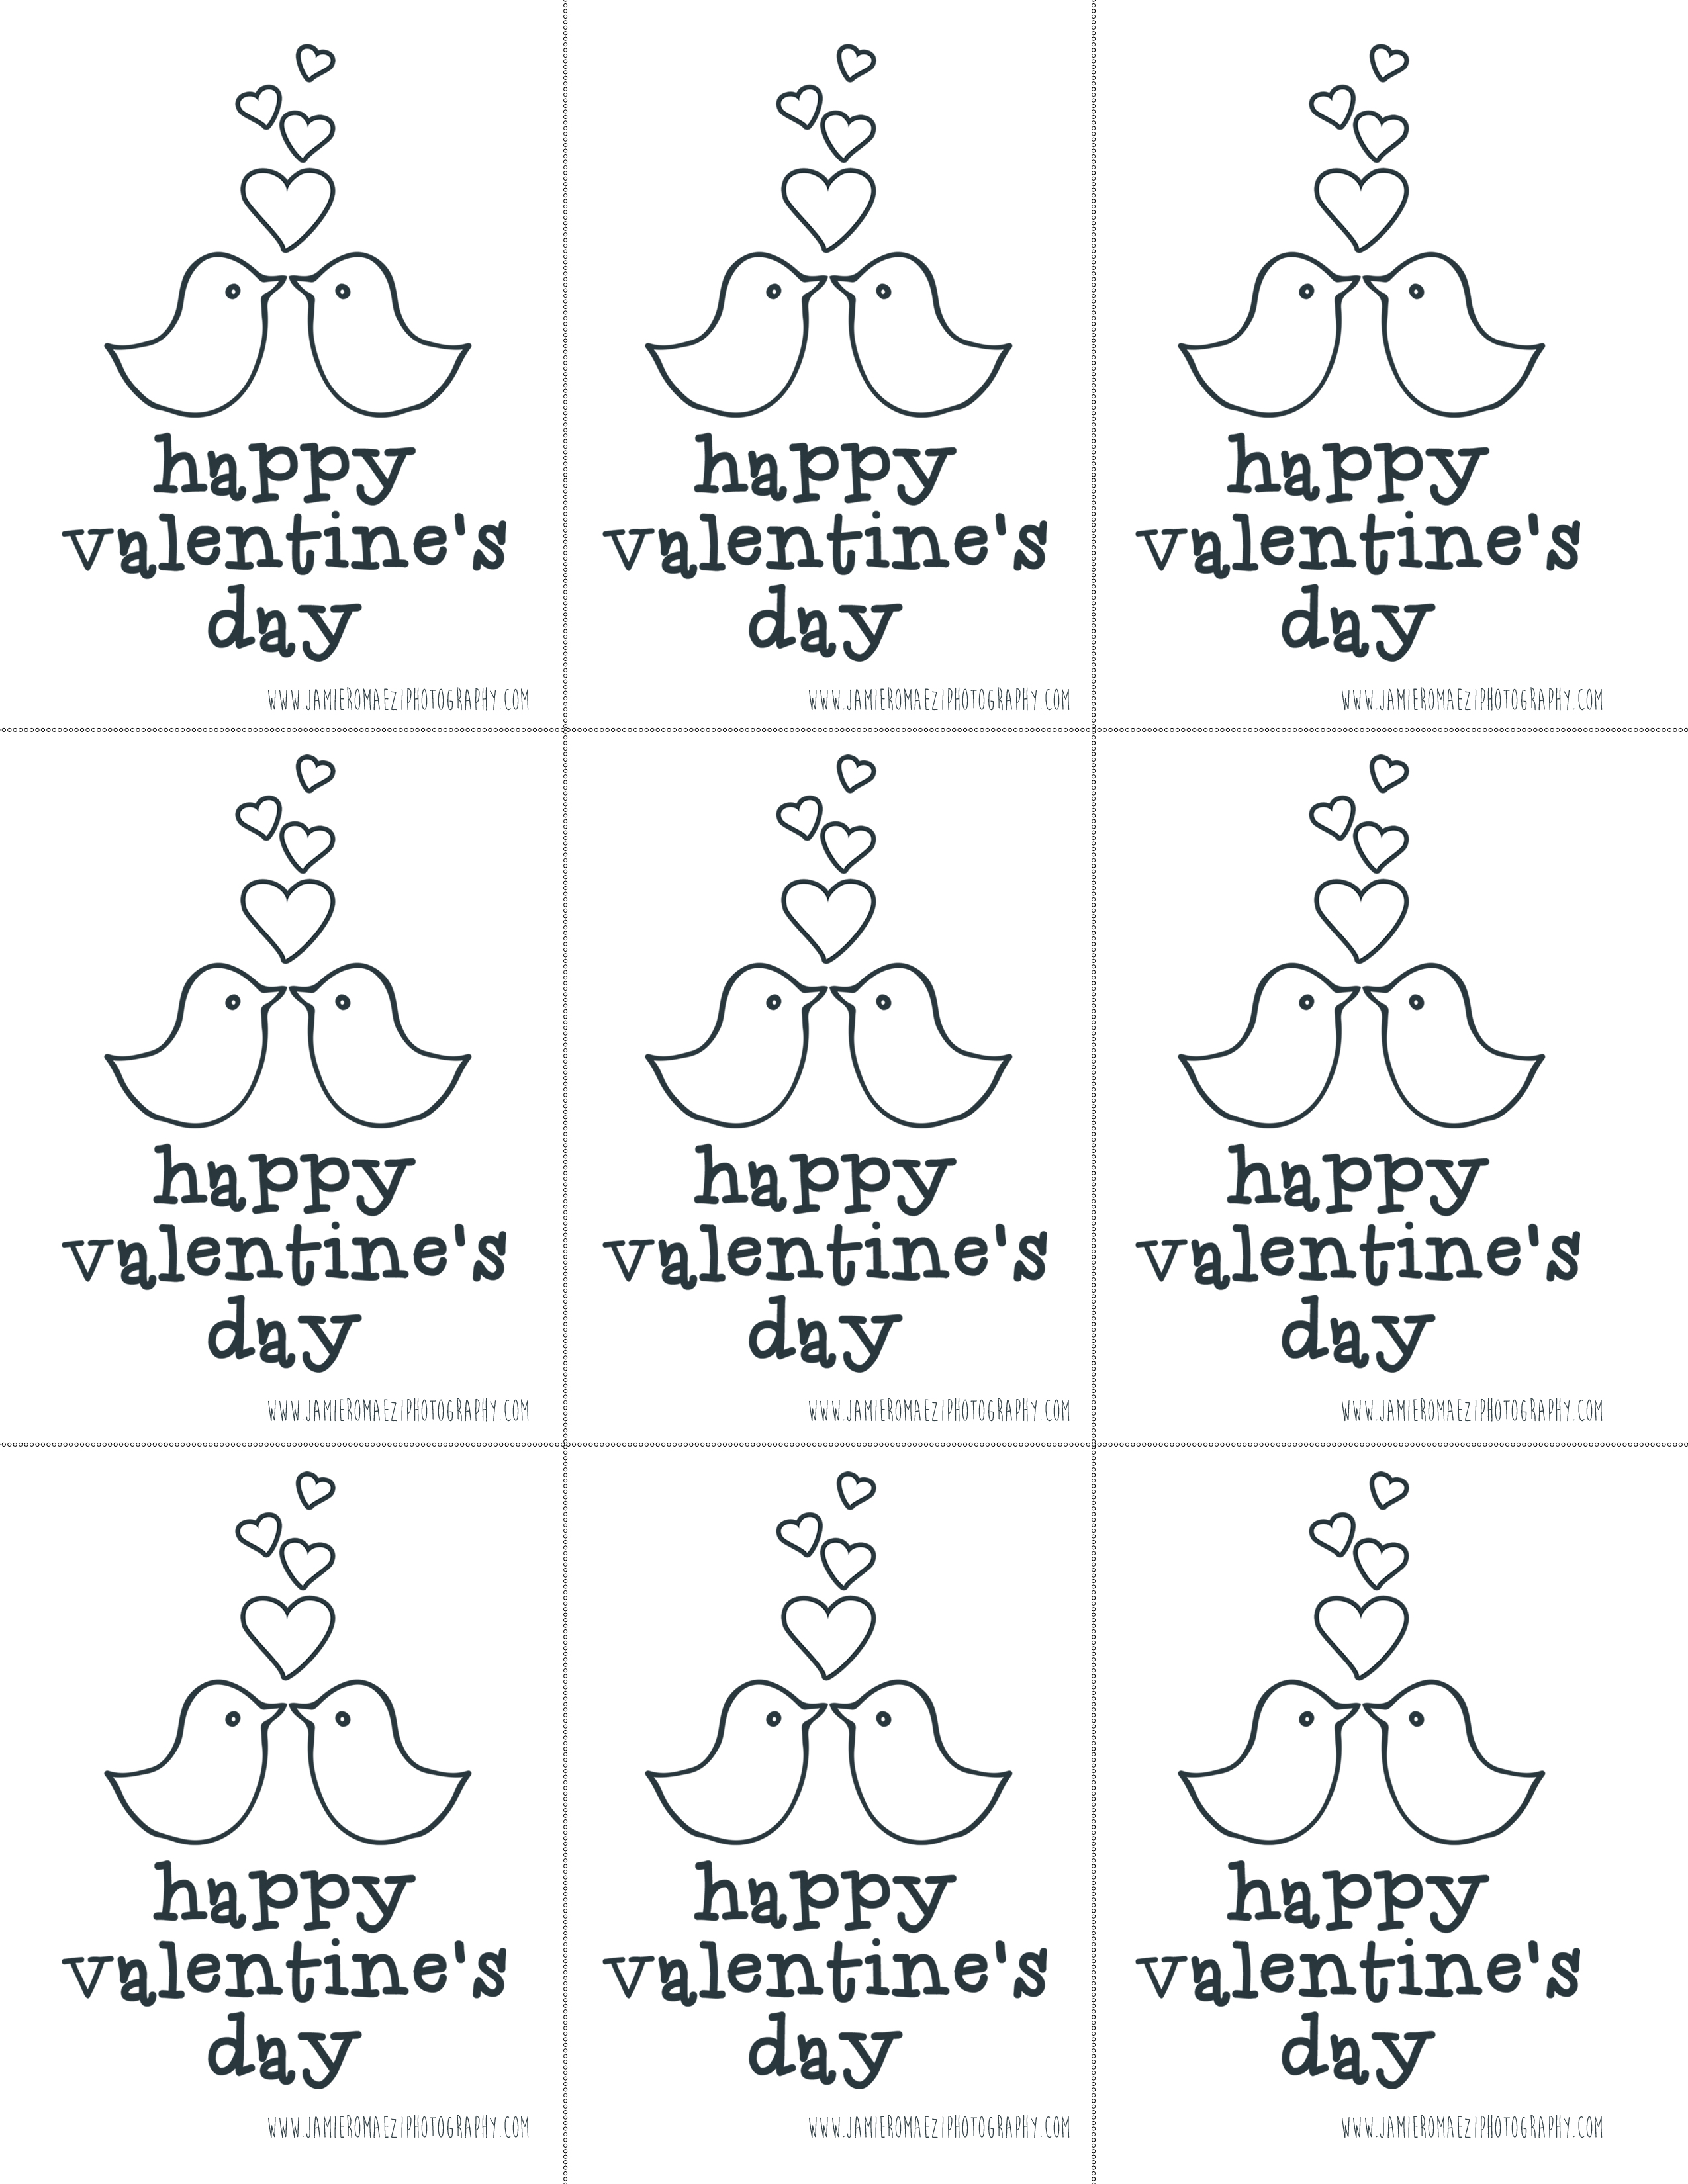 Download Your Free Valentines Day Coloring Cards Here